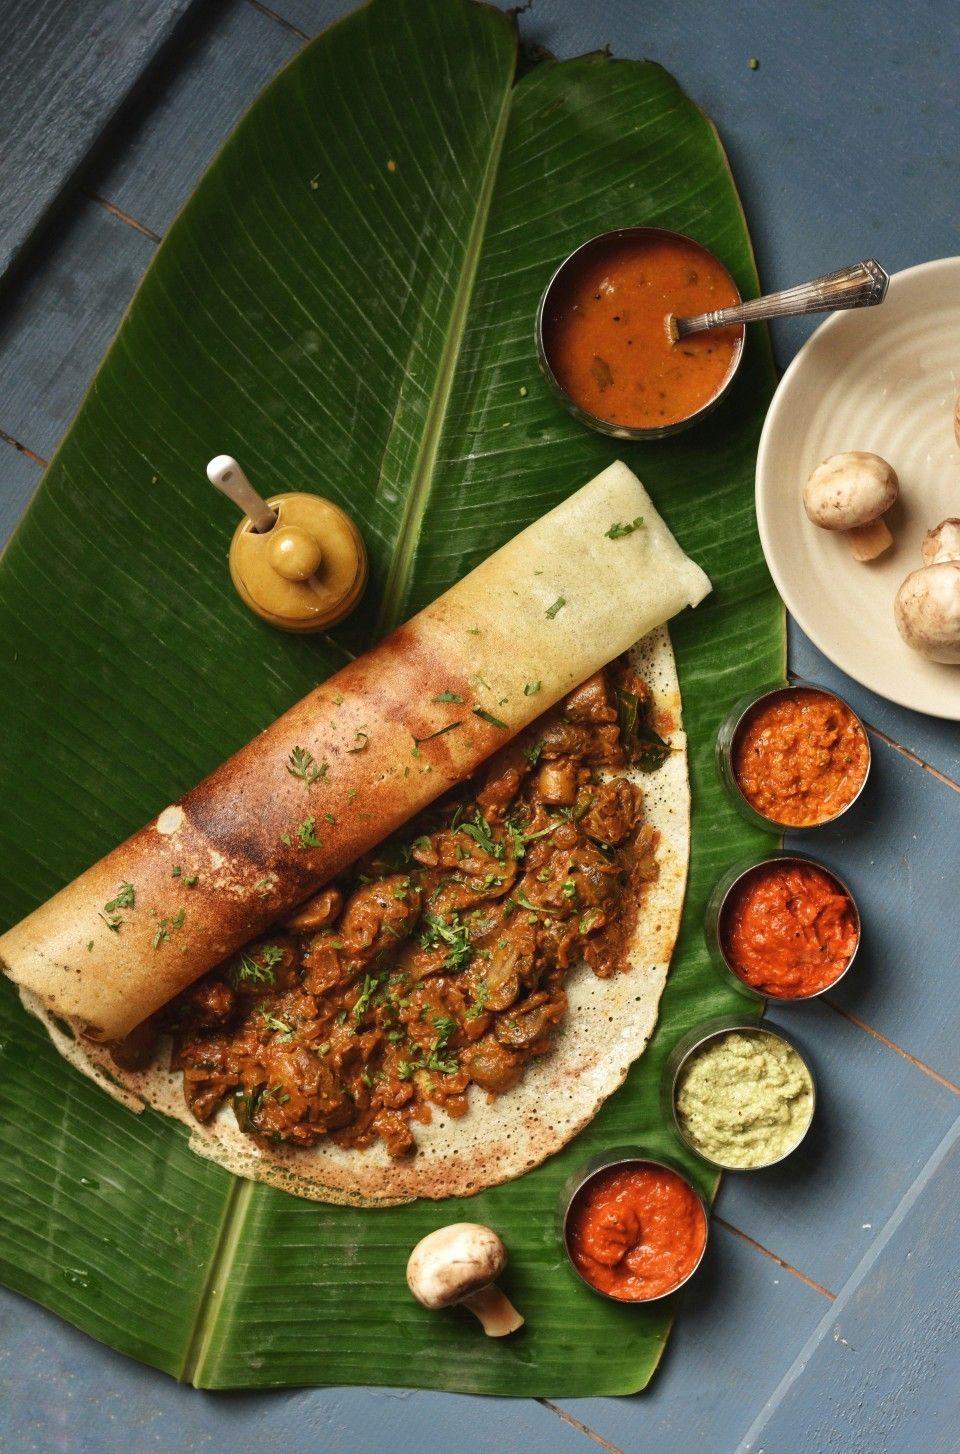 Mushroom Ghee Roast Dosa Food For The Body Is Not Enough There Must Be Food Indian Food Recipes Vegetarian Rustic Food Photography Indian Food Photography